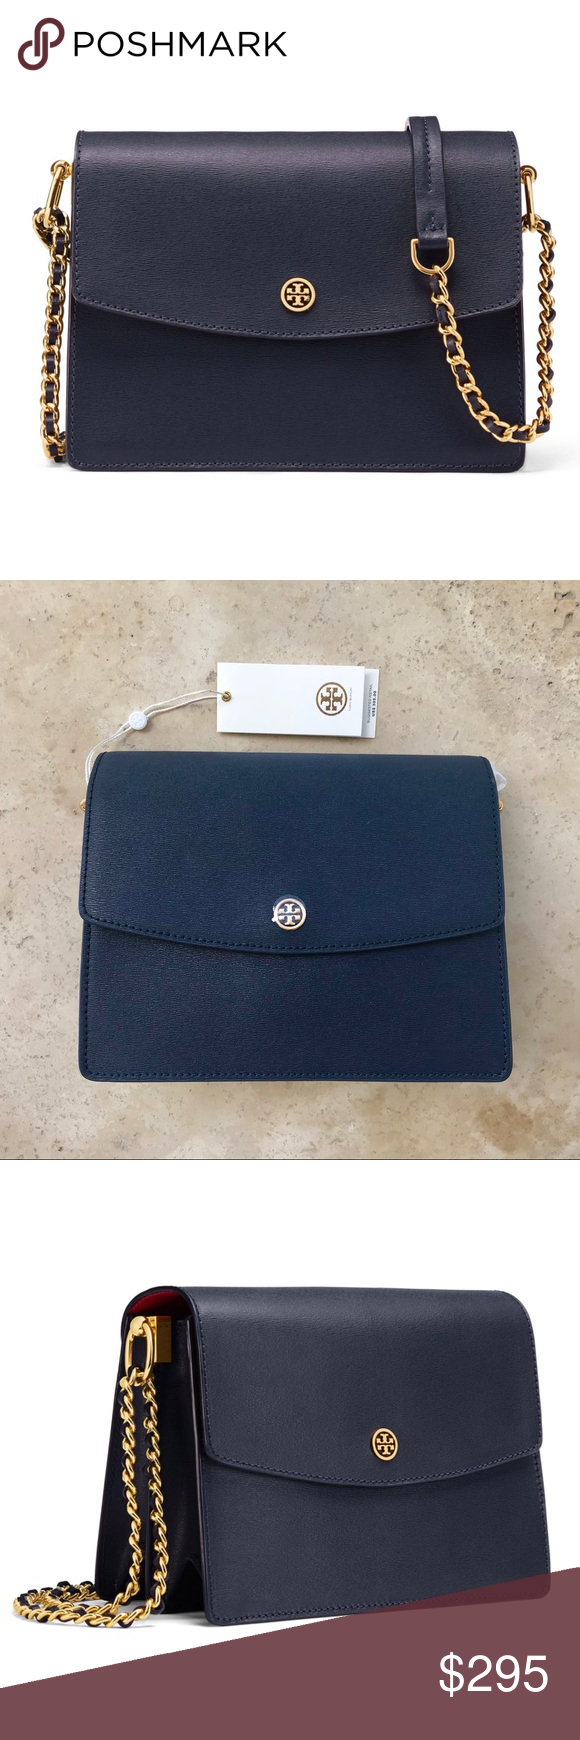 17f4d0809feb Tory Burch Parker Convertible Shoulder Bag Navy Authentic. Brand new with  tag and dust bag